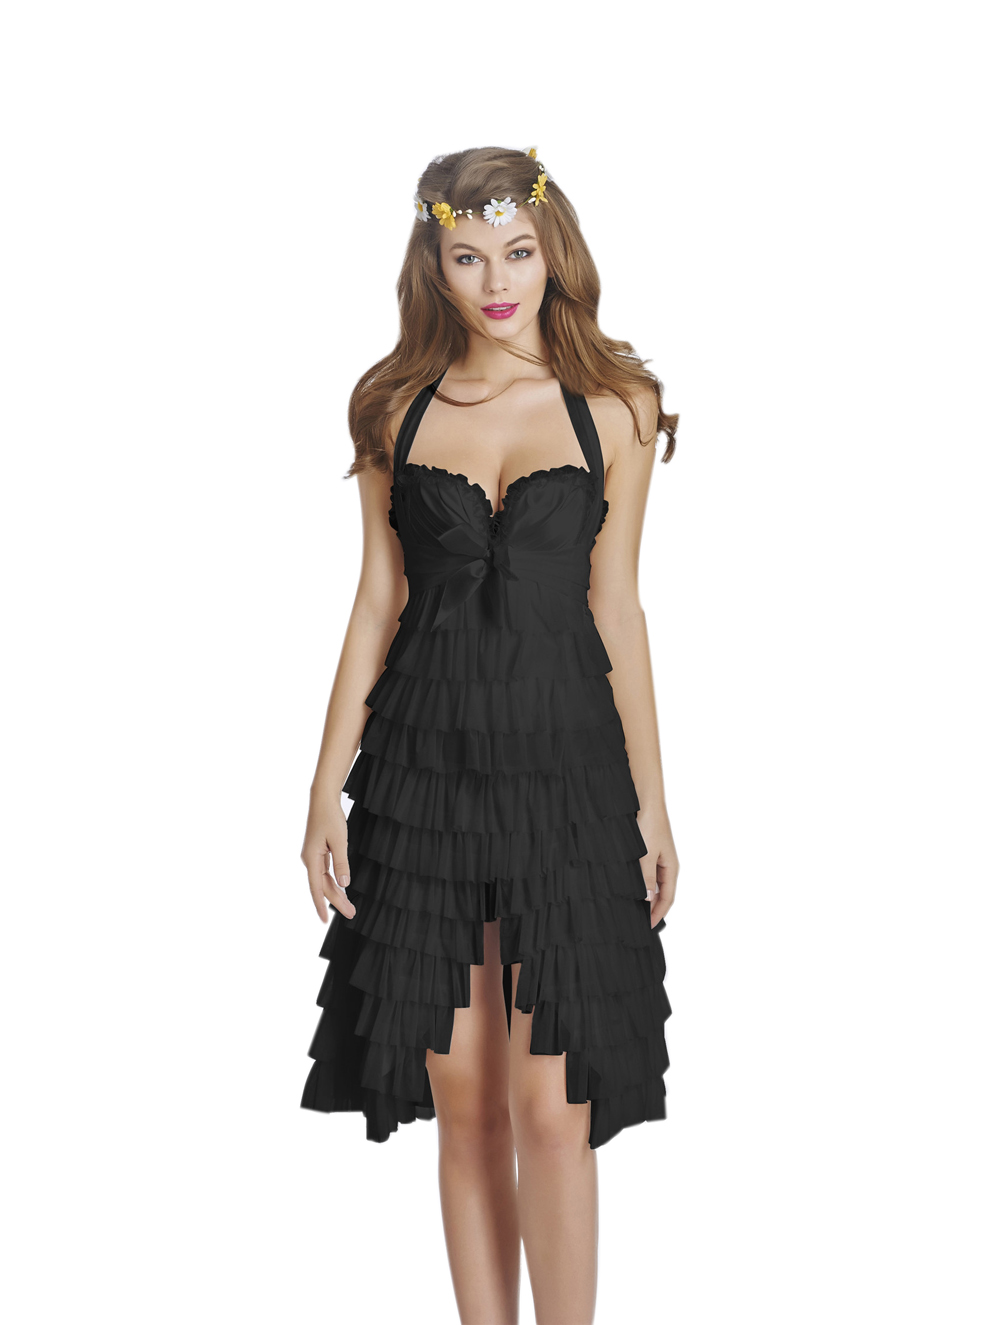 F3226-2 New Fashion Sexy Corset Overbust Mini Skirt Halloween Fancy Dresses